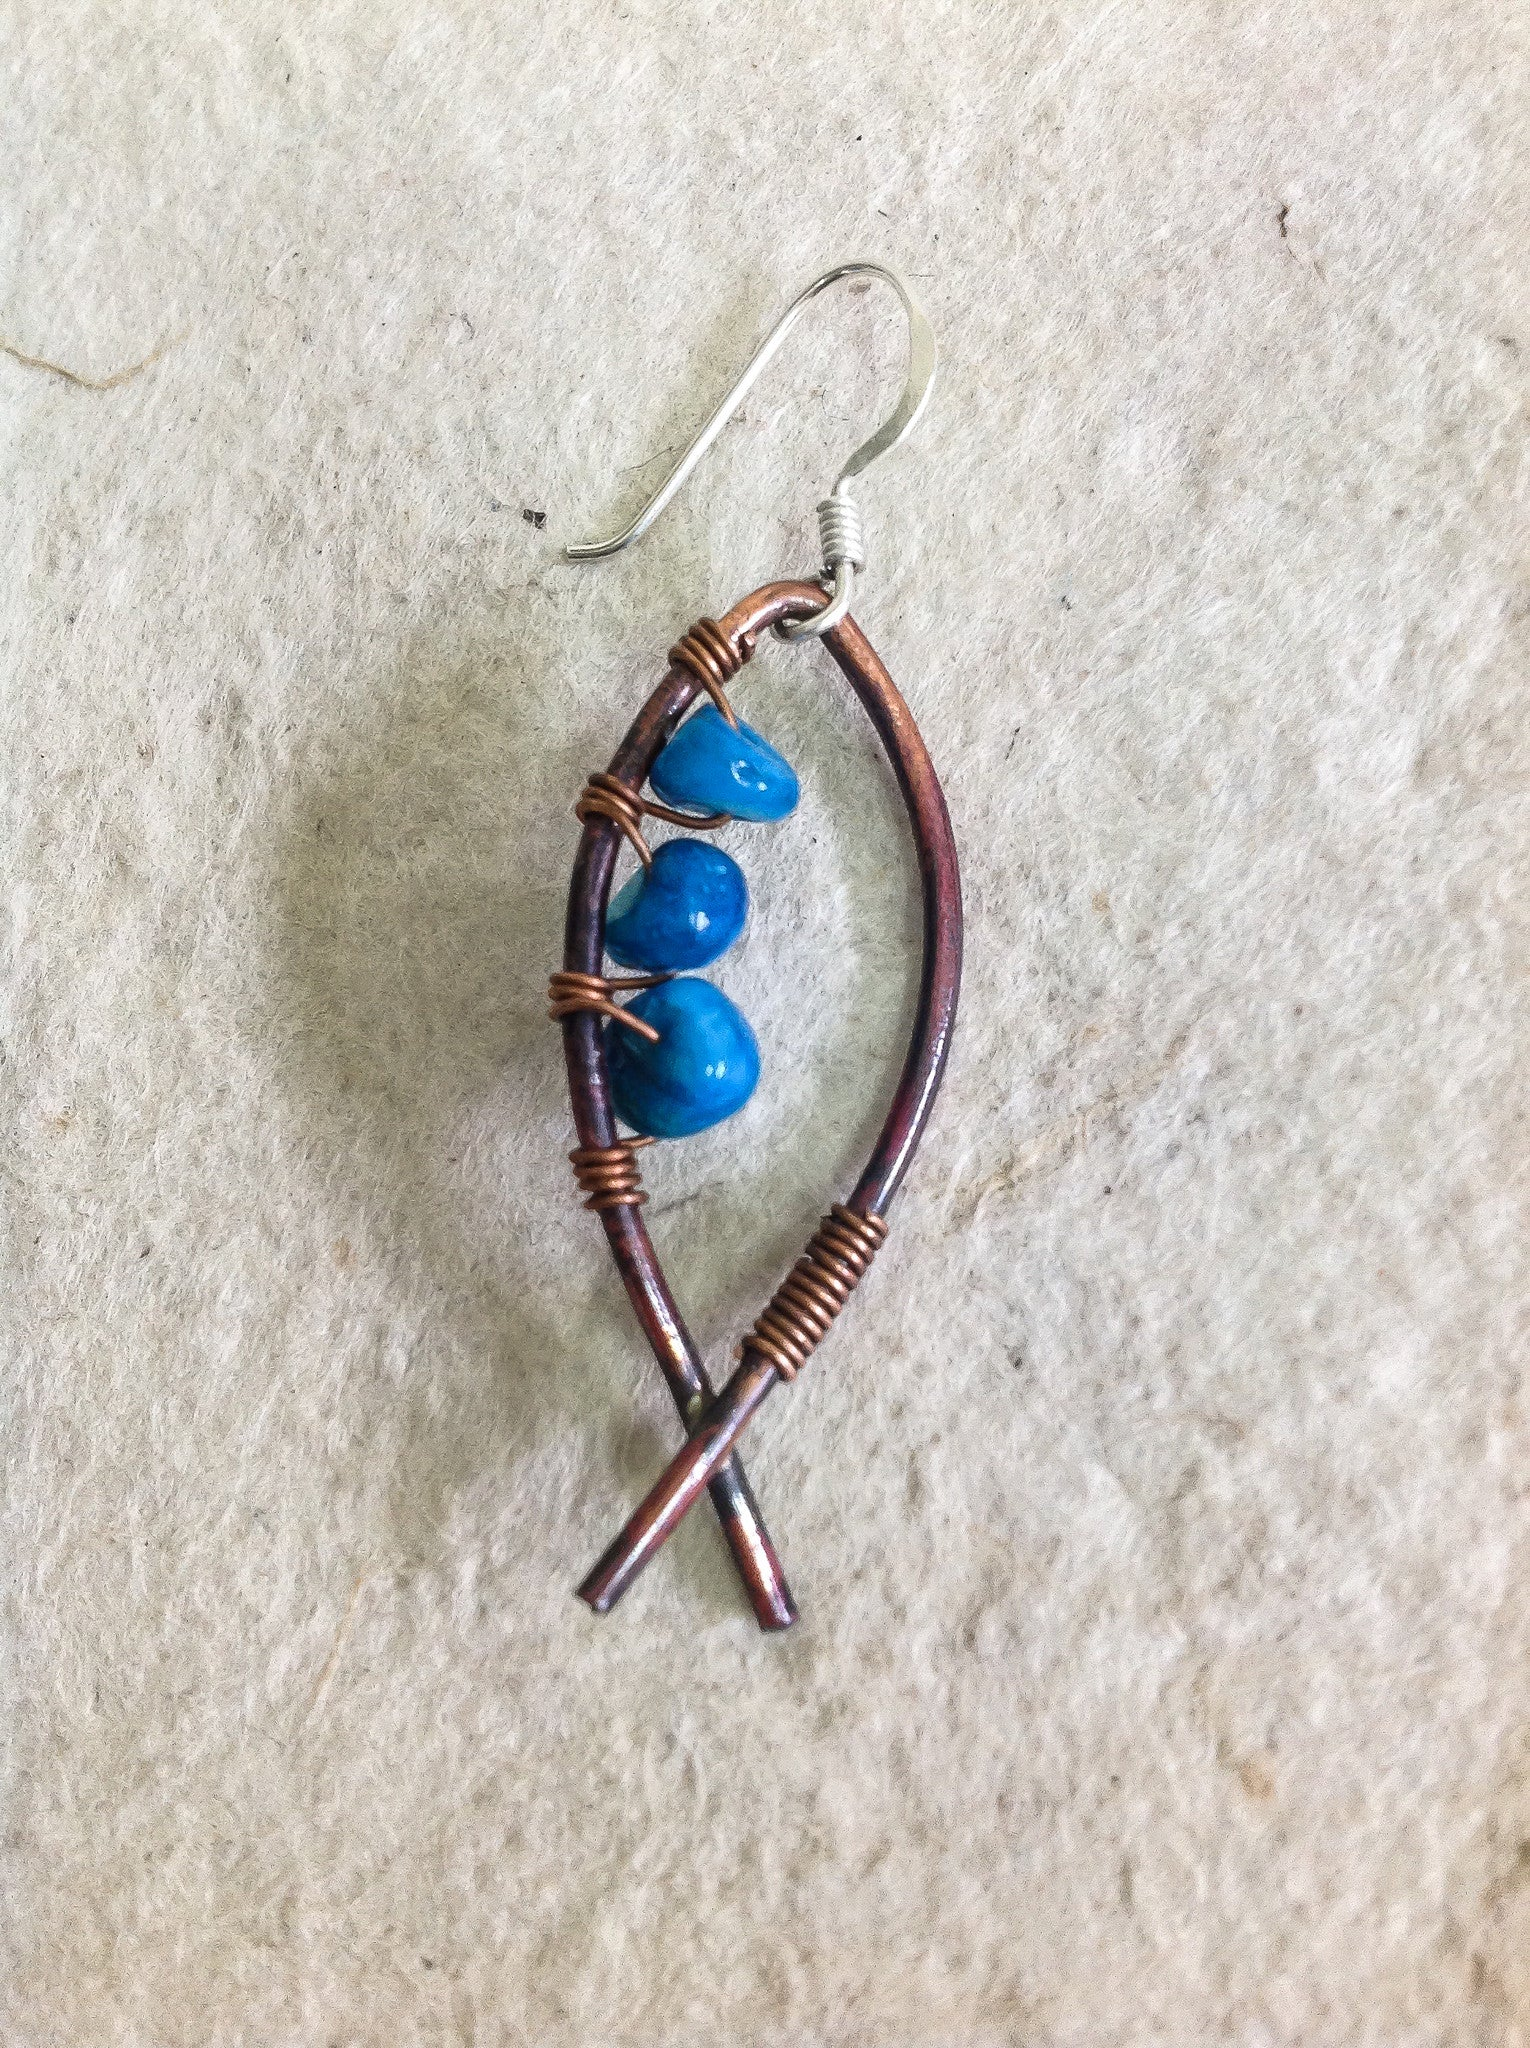 Copper Ichthus earrings